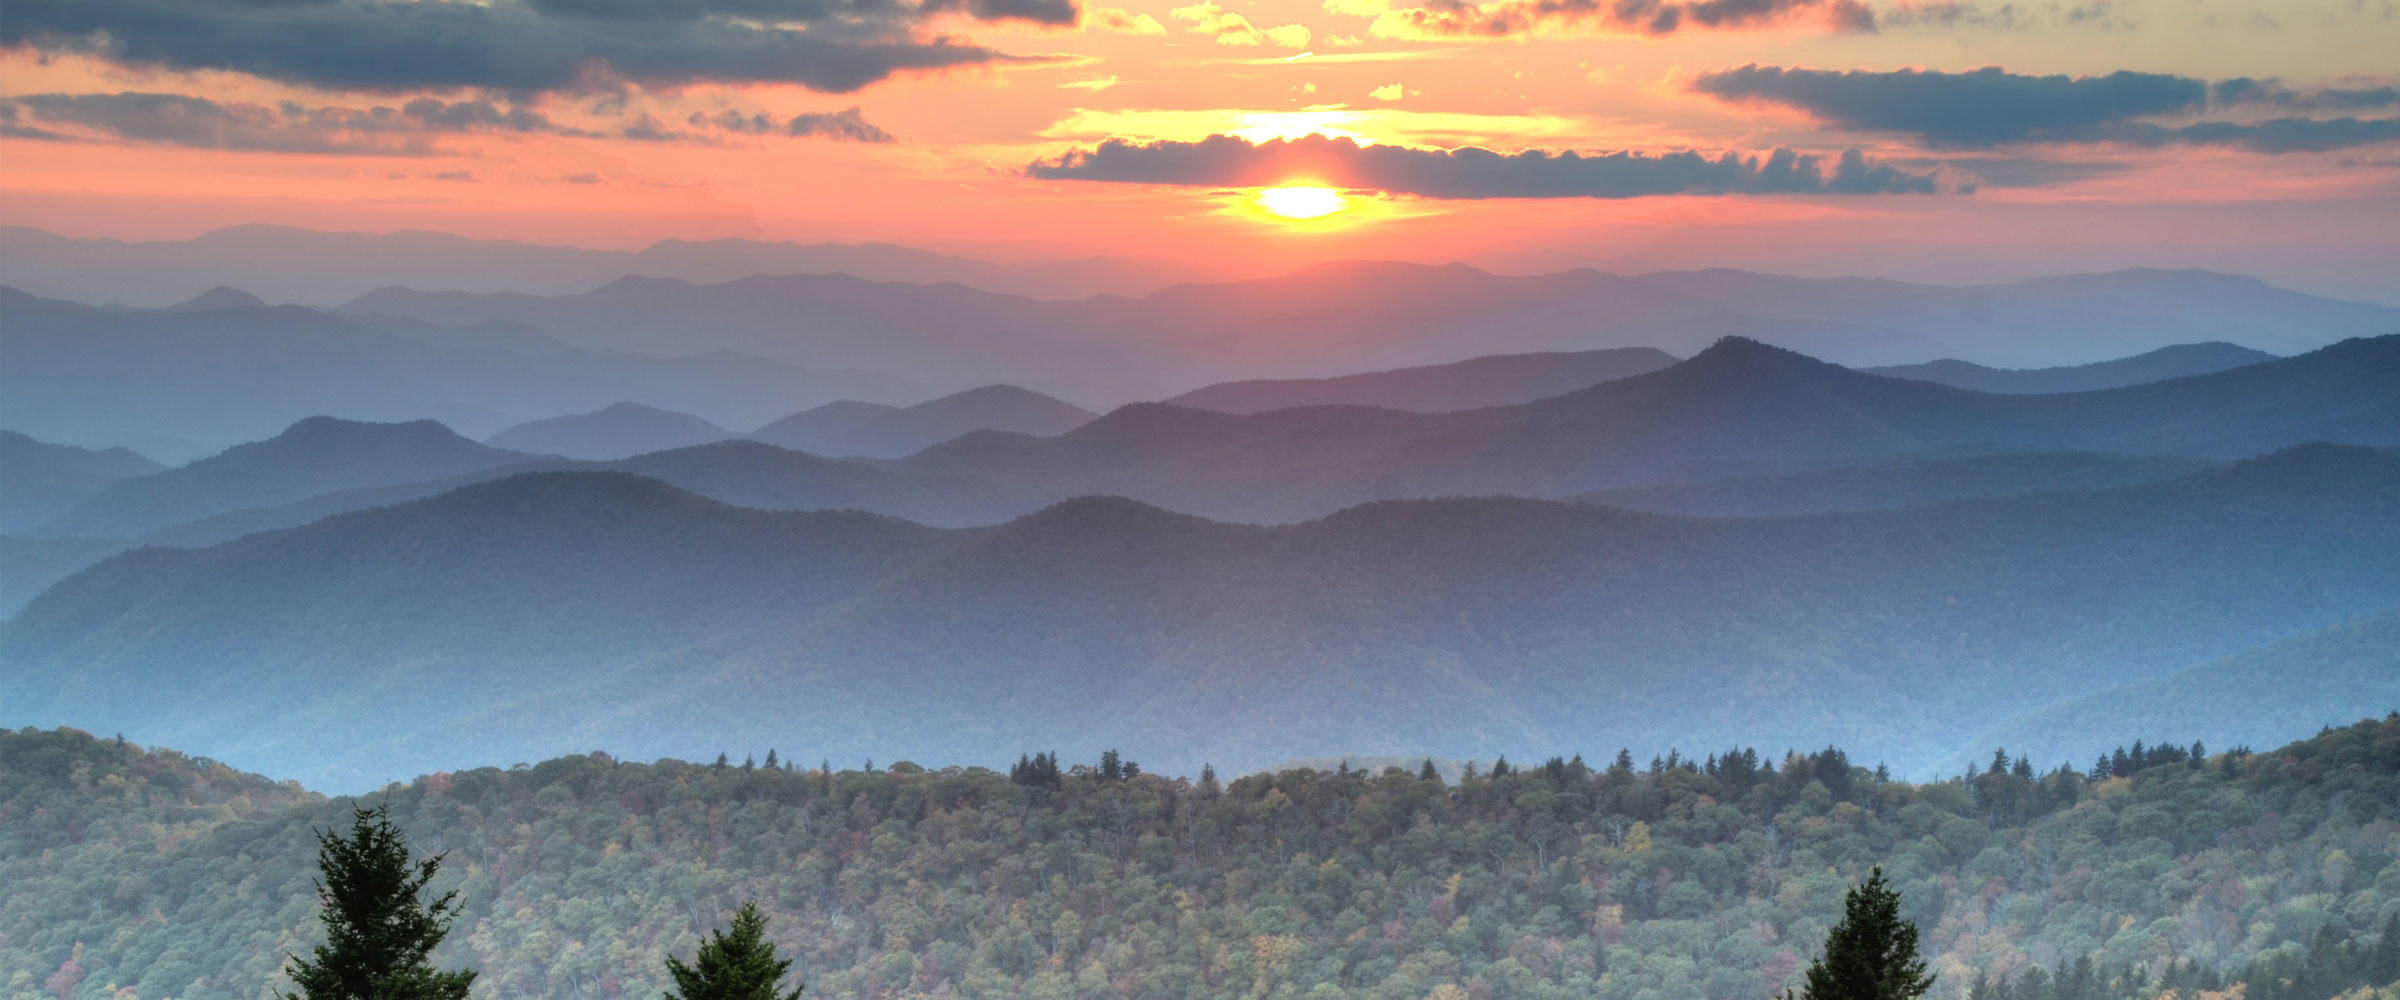 Blue Ridge Mountains_Mary Anne Baker_Flickr CC